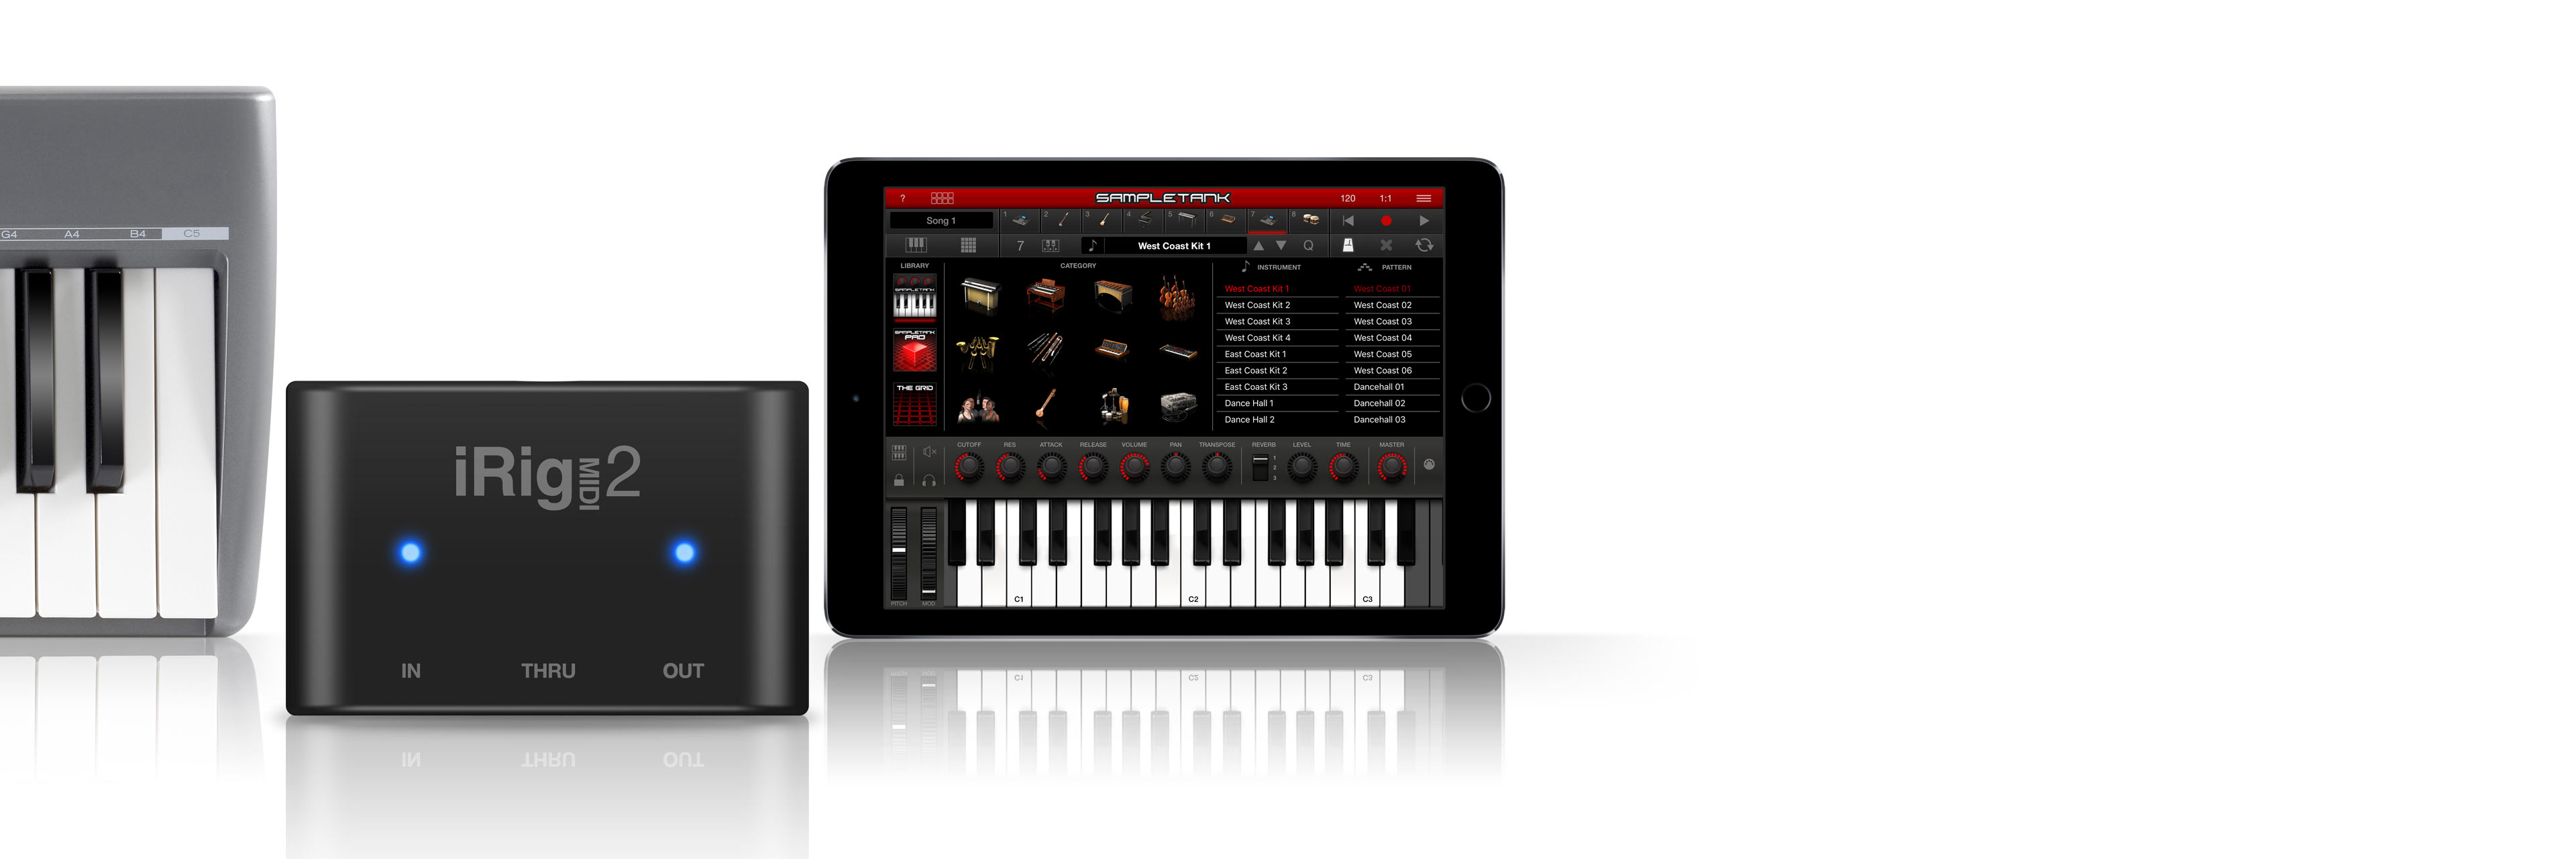 Universal MIDI interface for iPhone/iPod touch/iPad and Mac/PC